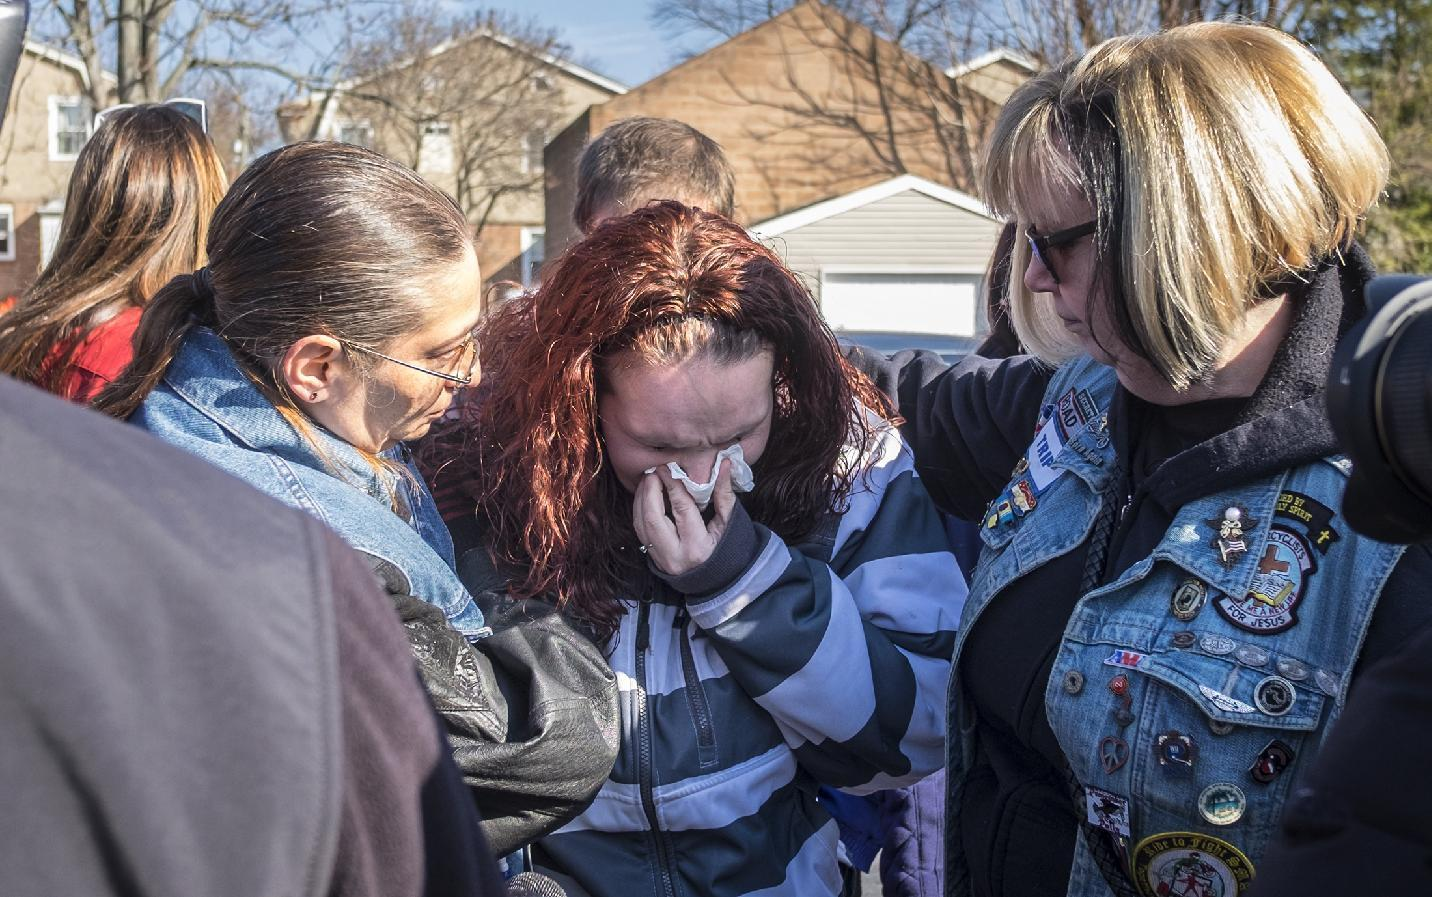 The Latest: Friends: Slain teen had typical parent issues